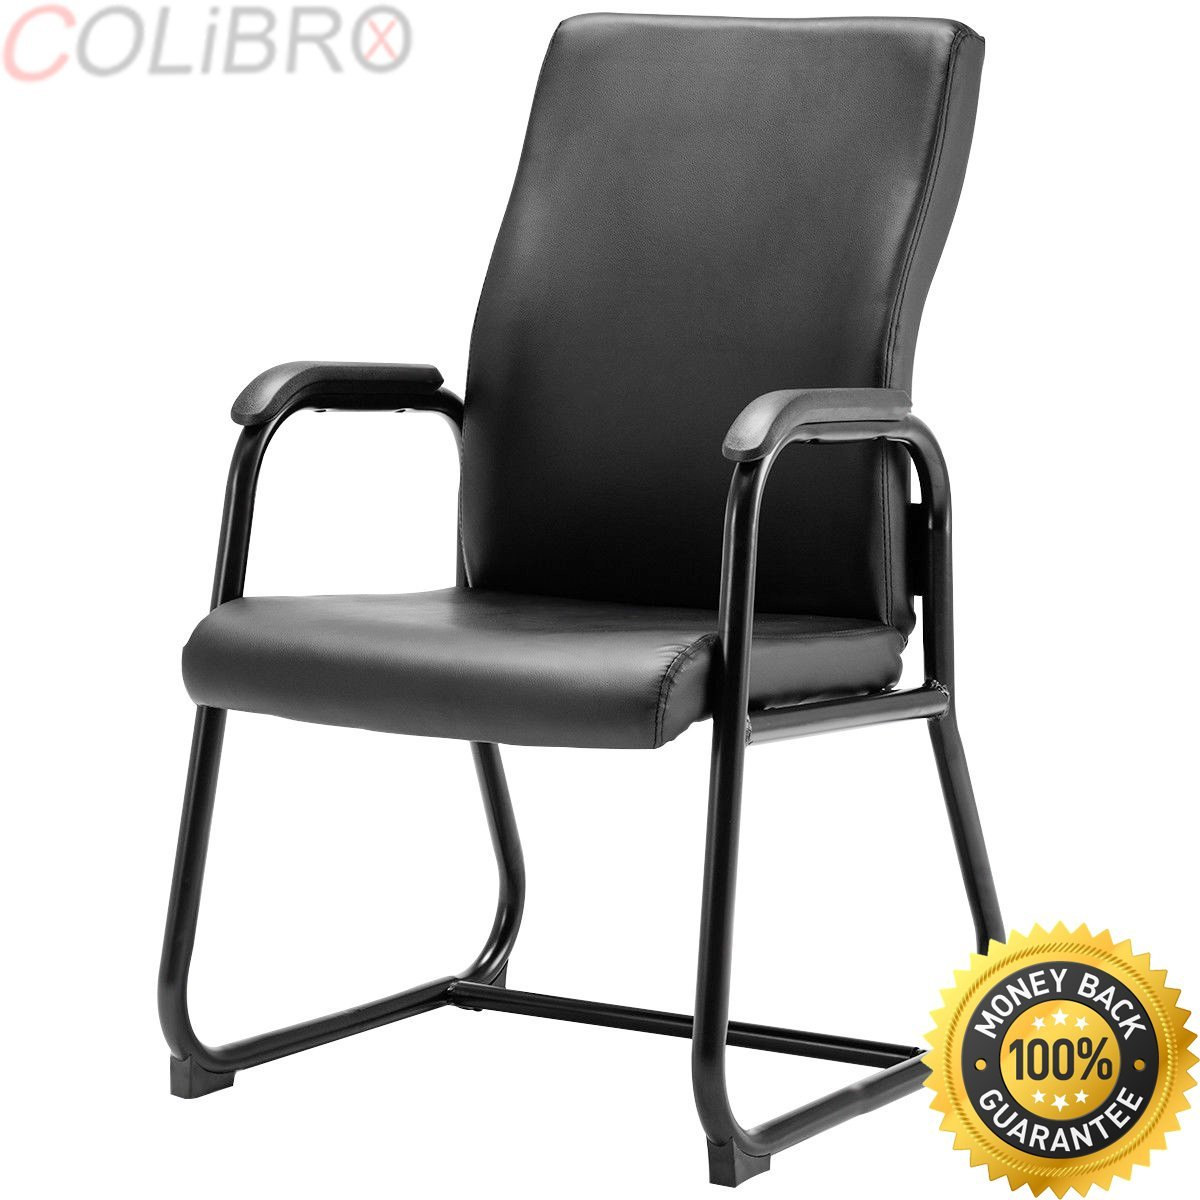 COLIBROX--Set of 2 PU Conference Chair Mid-Back Reception Guest Office Lecture Exam Chair. leather conference chairs. best conference room chairs amazon. black amazon reception chairs. guest chairs.